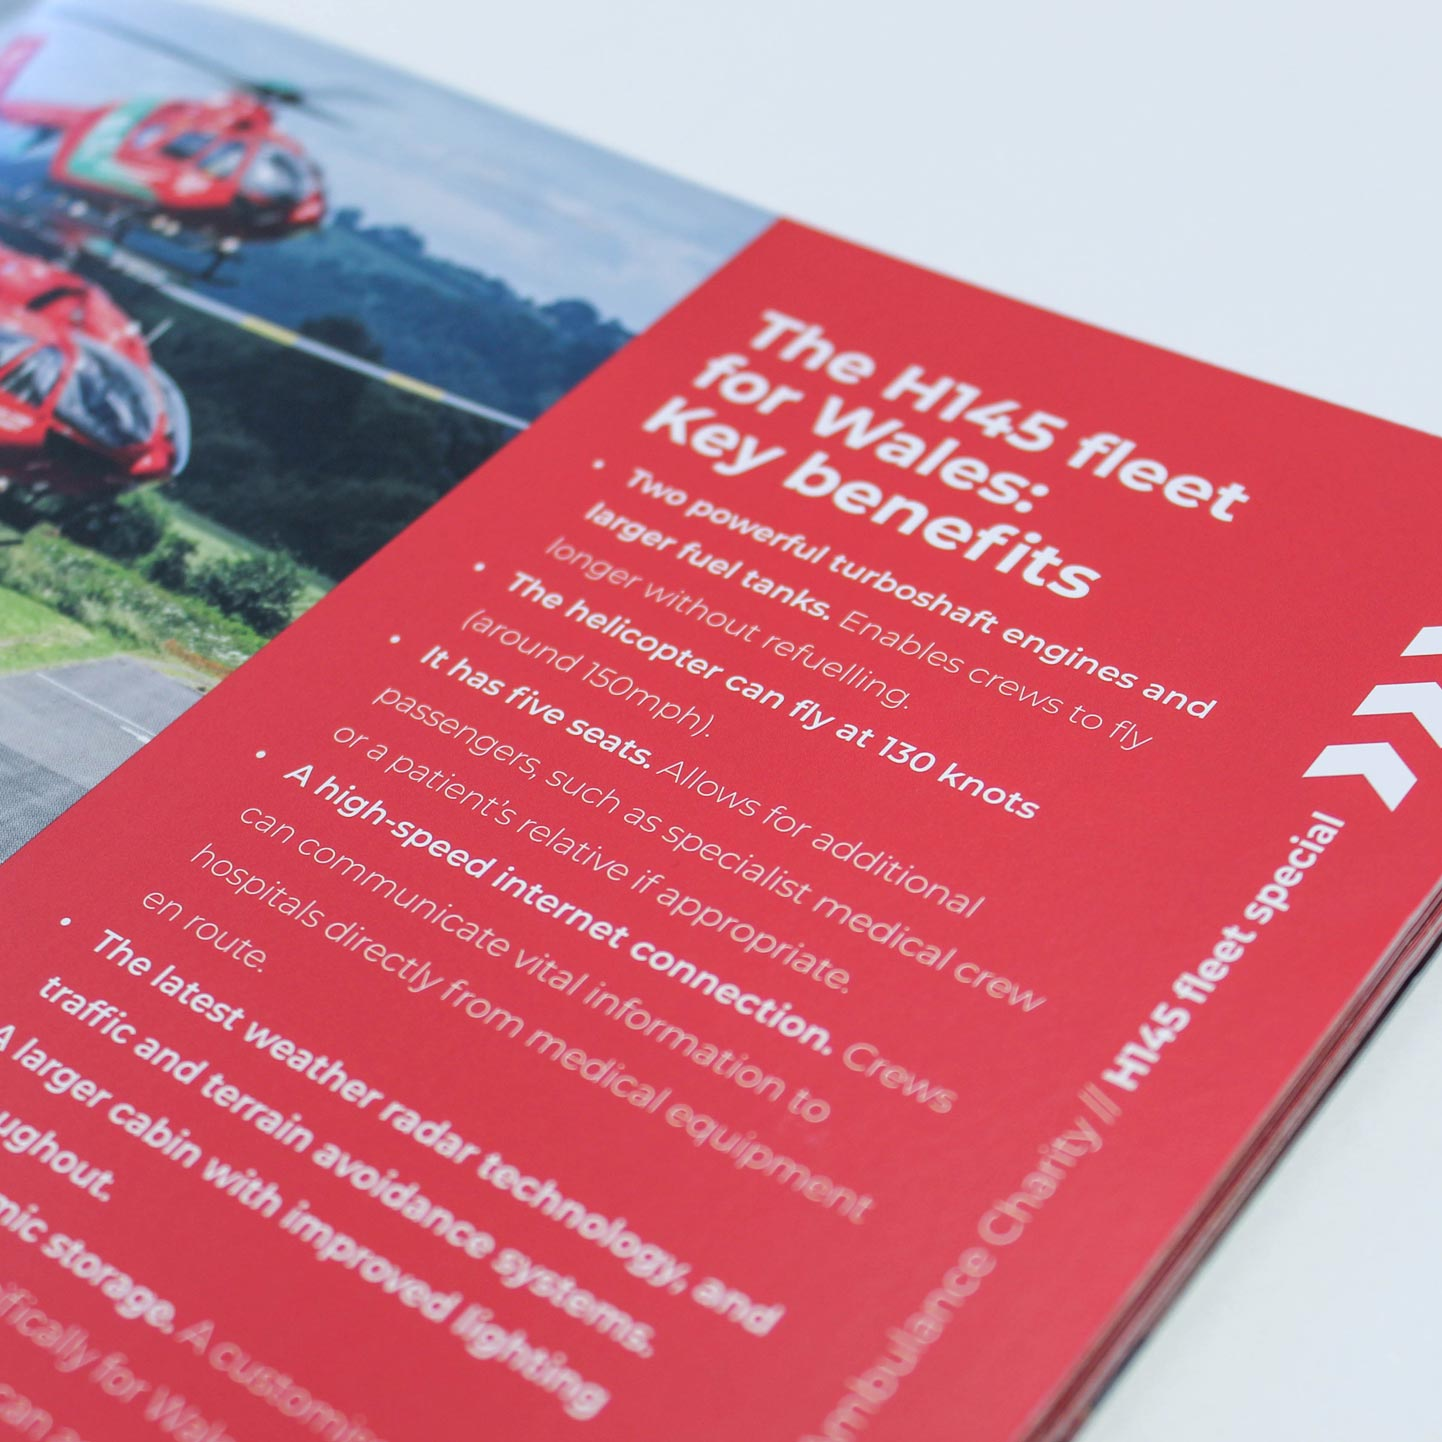 Wales Air Ambulance Annual Review Page Detail